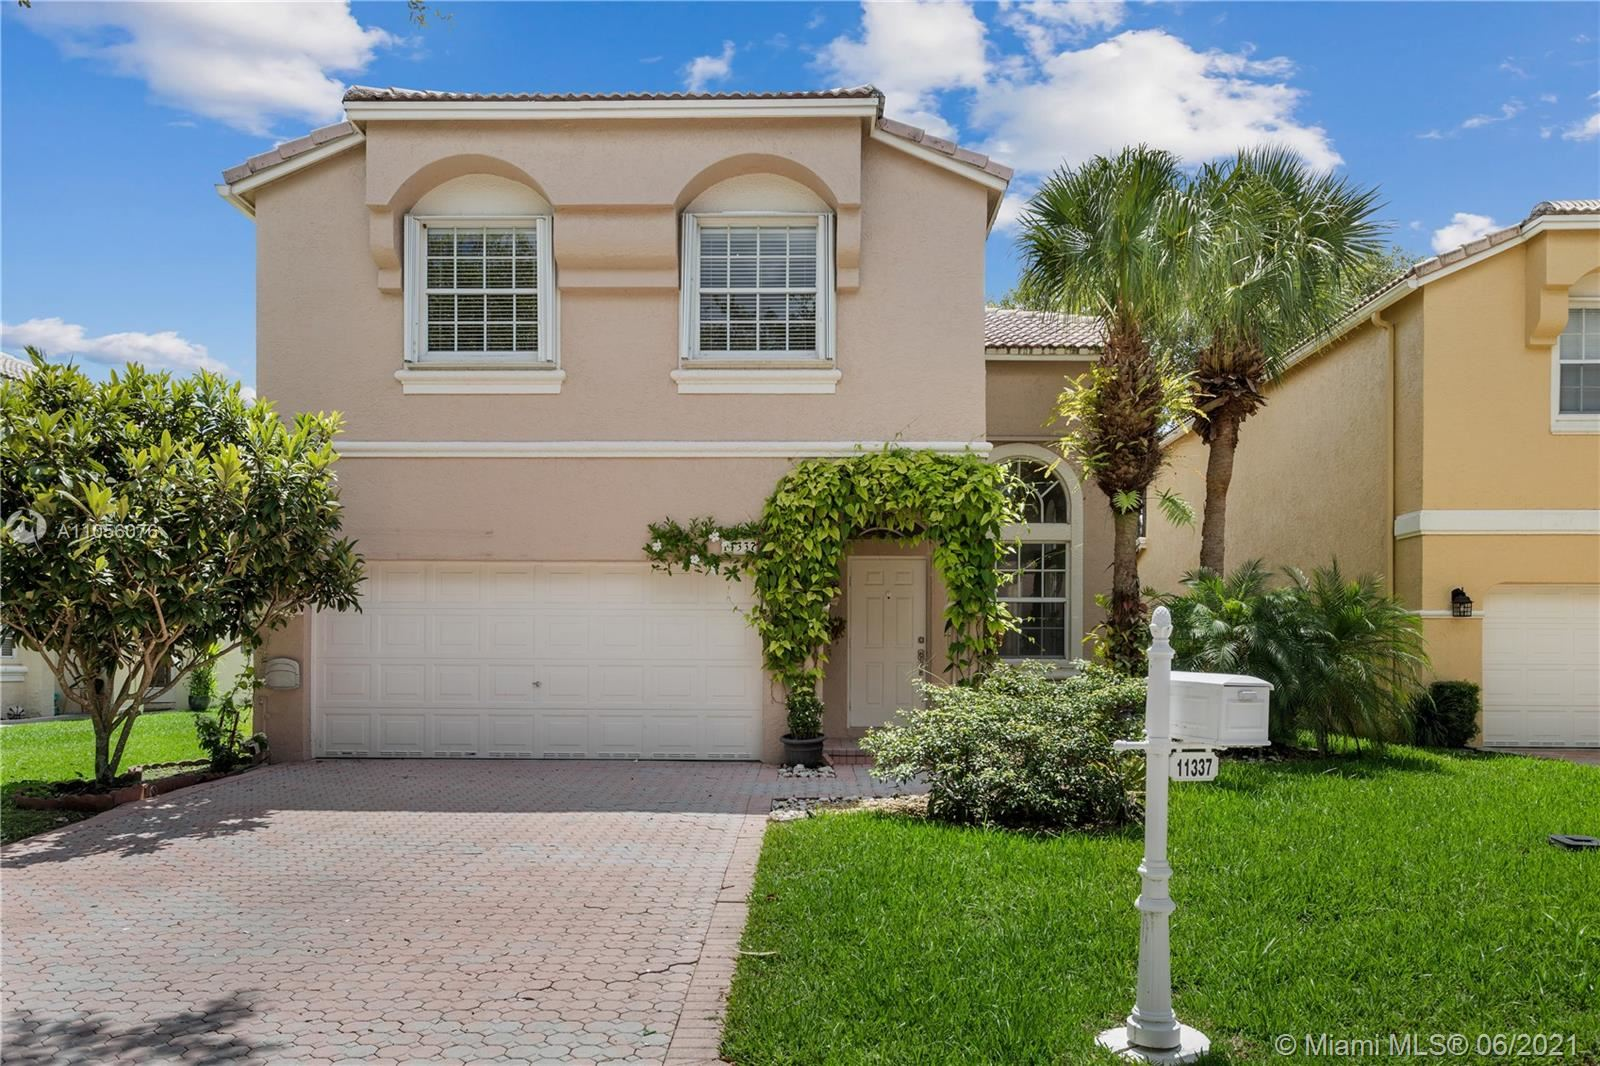 11337 NW 49th Dr, Coral Springs, FL 33076 - #: A11056076